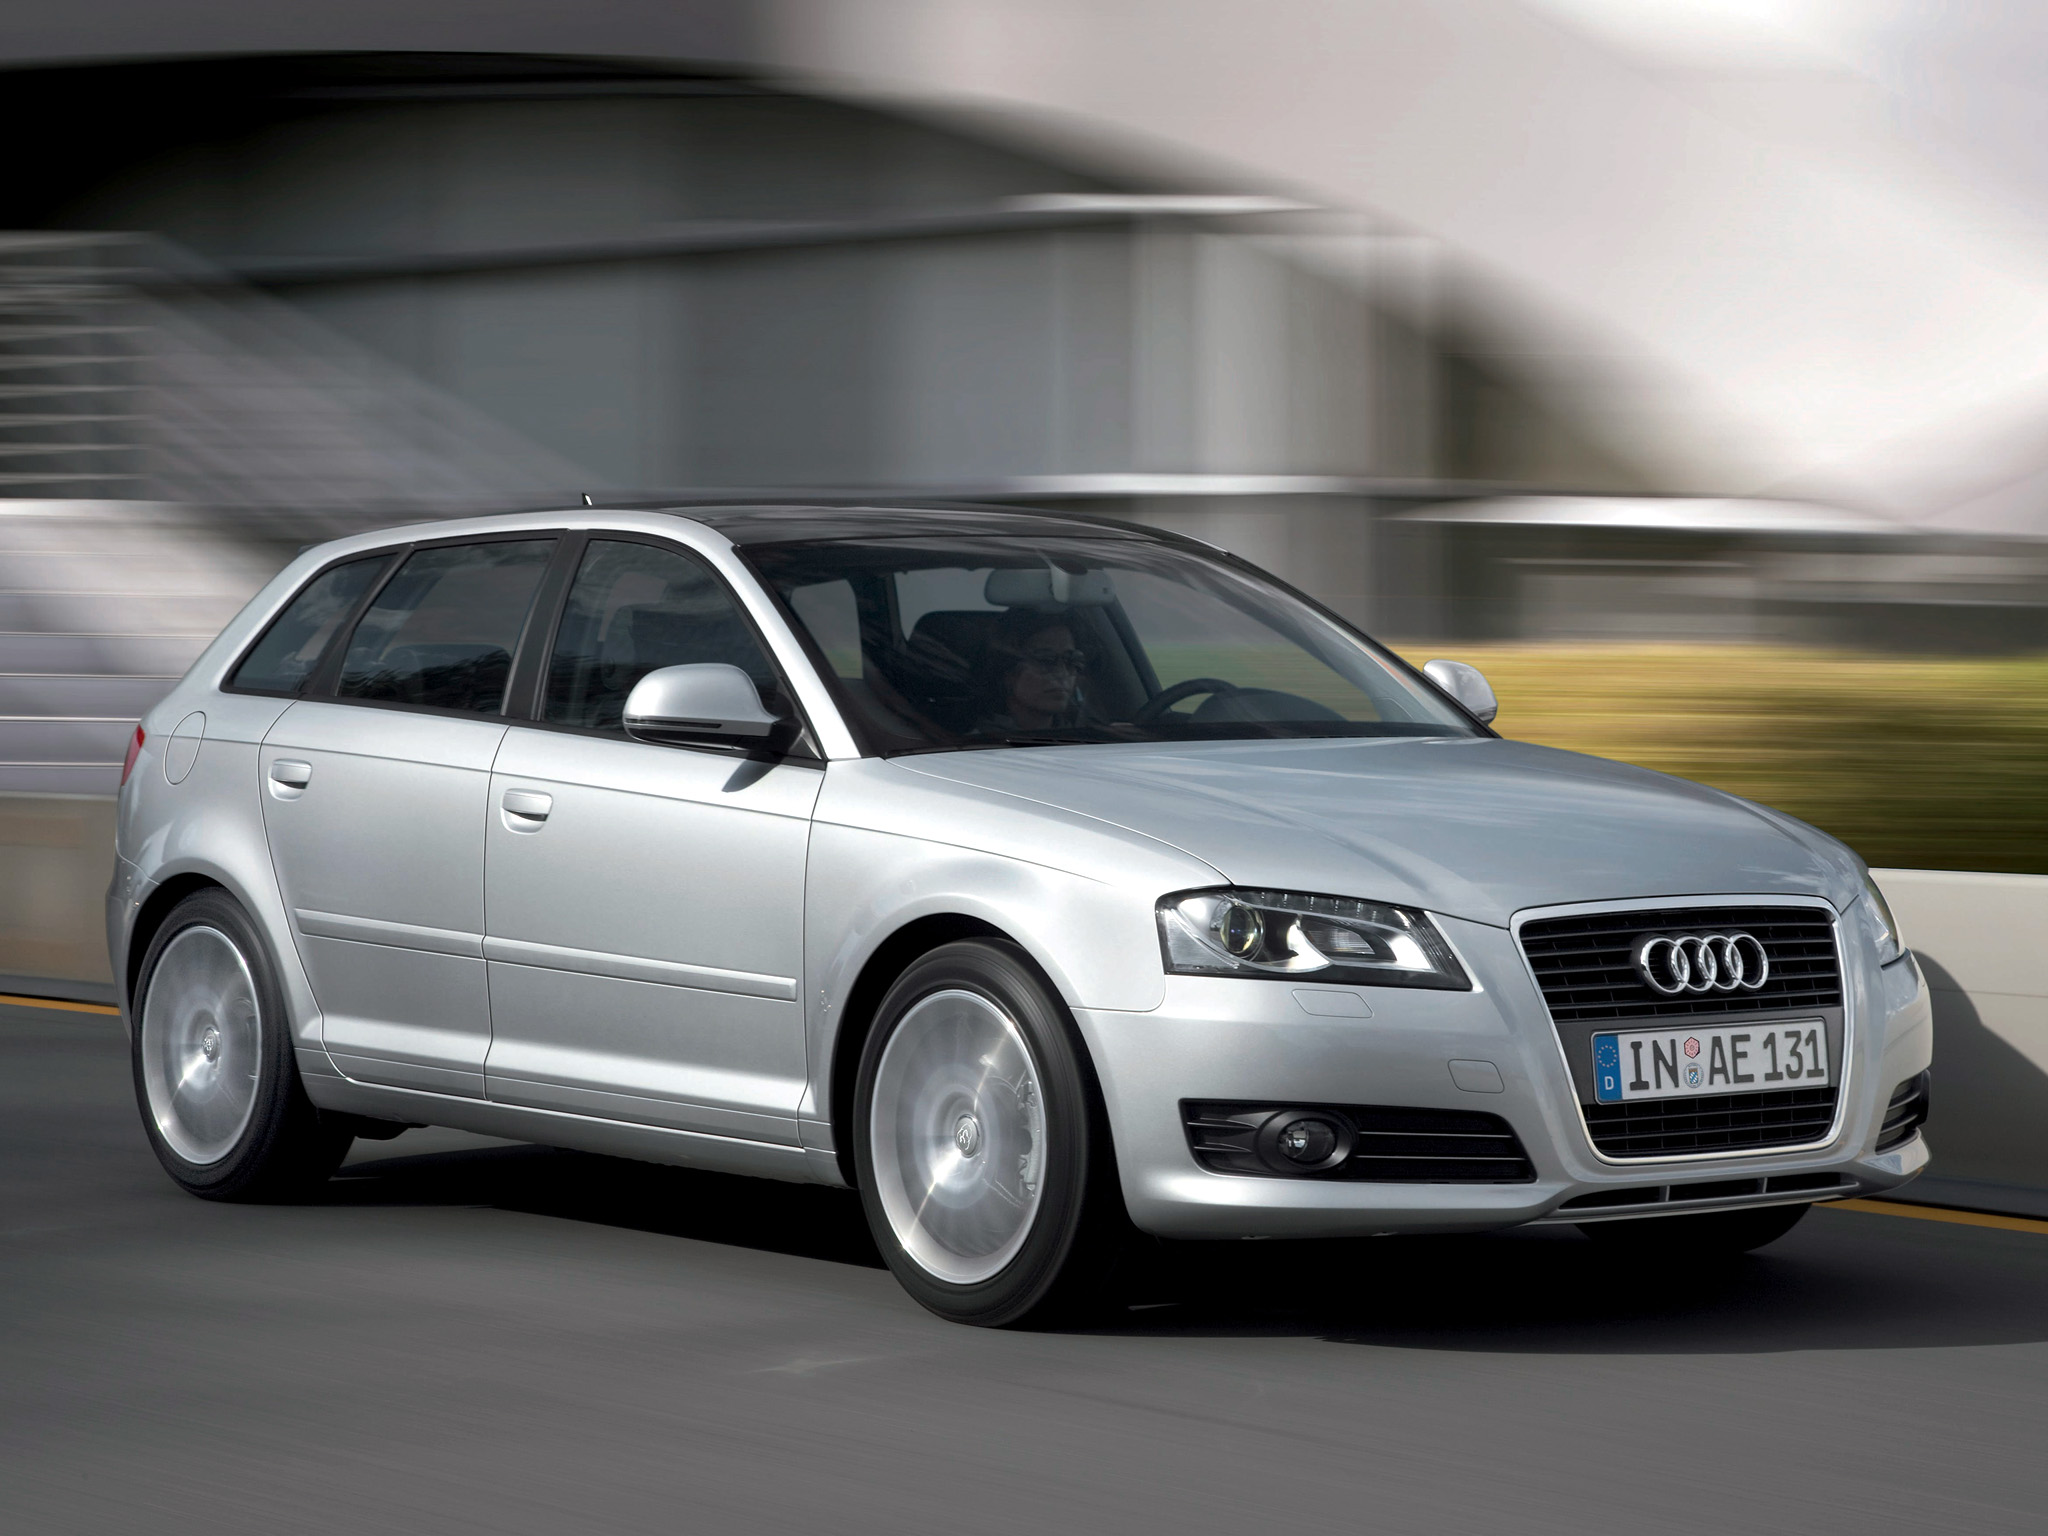 Audi A3 Sportback Wallpapers Cool Cars Wallpaper 2048x1536